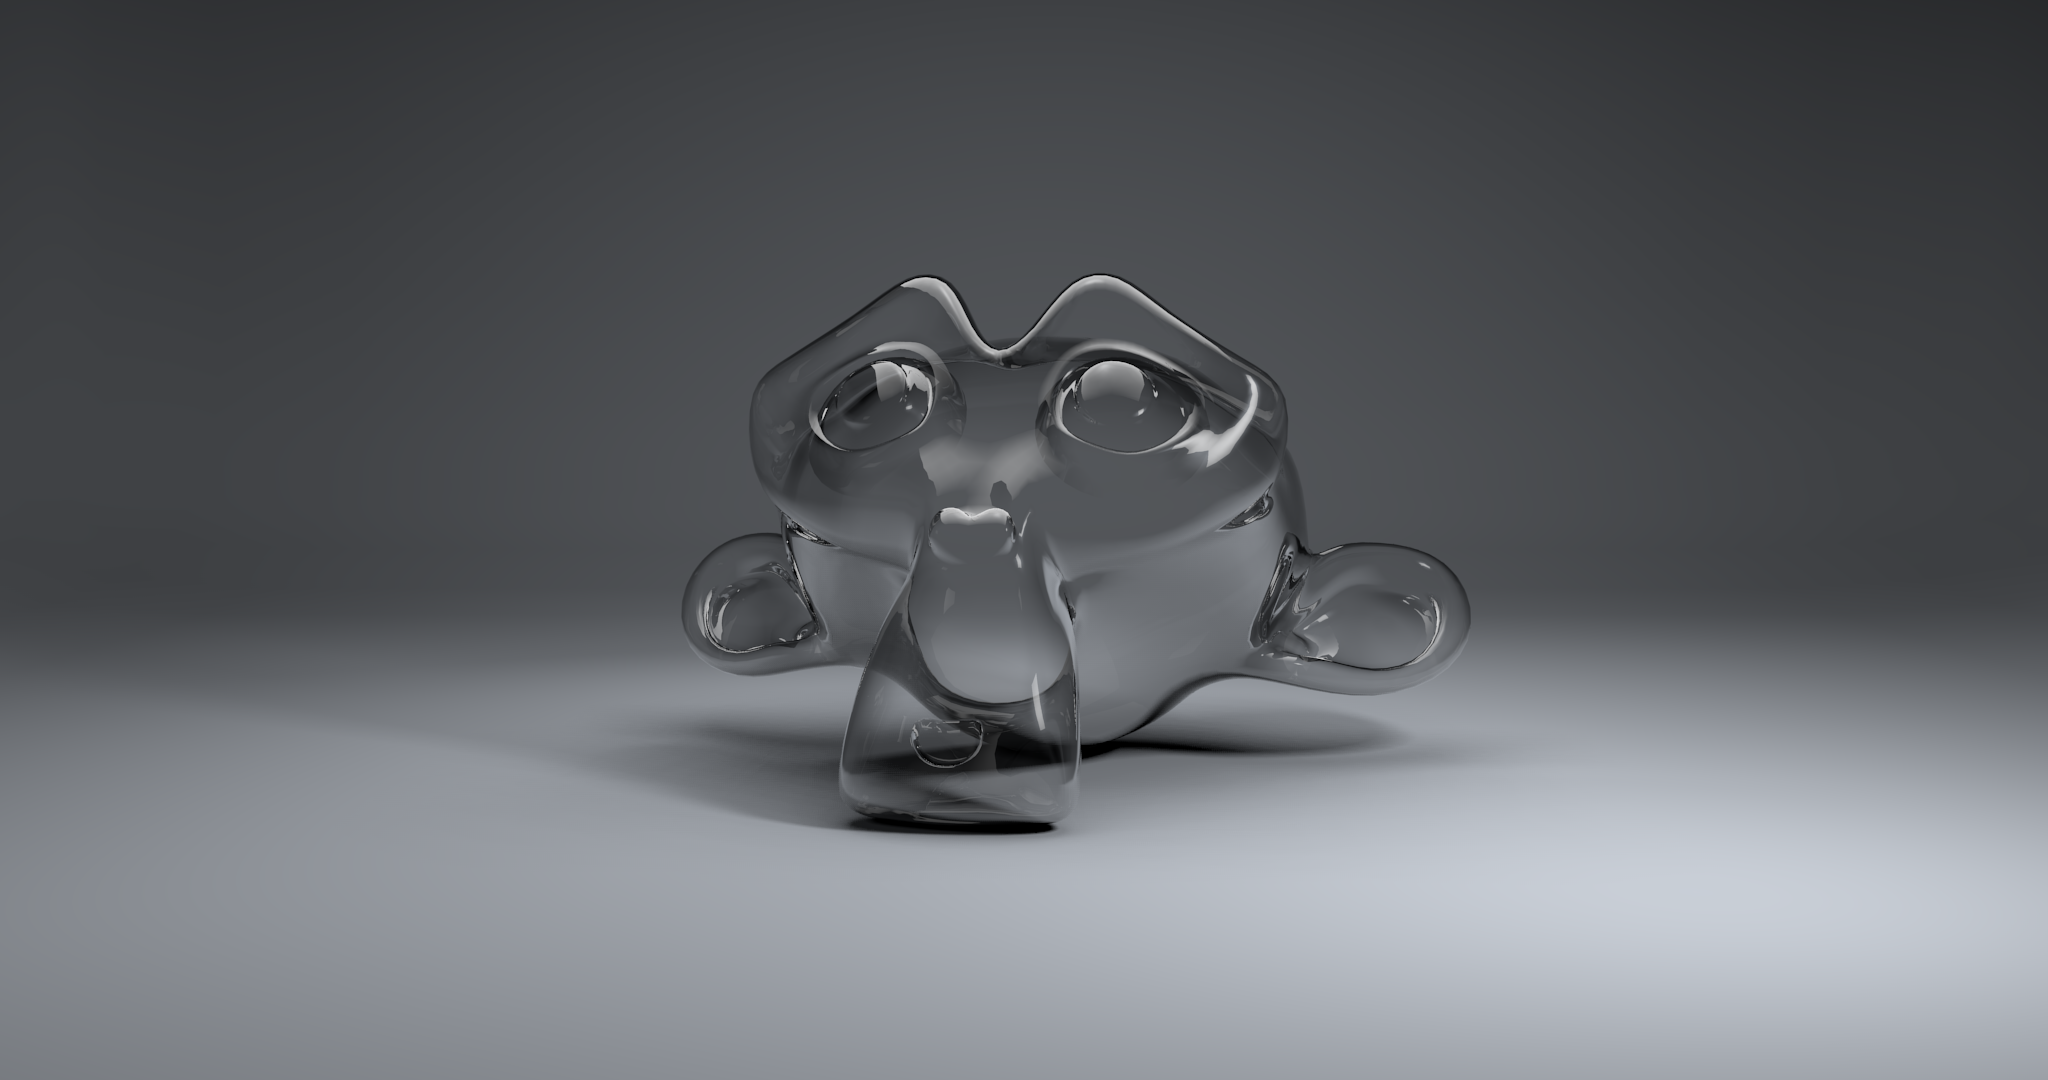 Glass 3d model 3ds fbx blend dae obj 213086